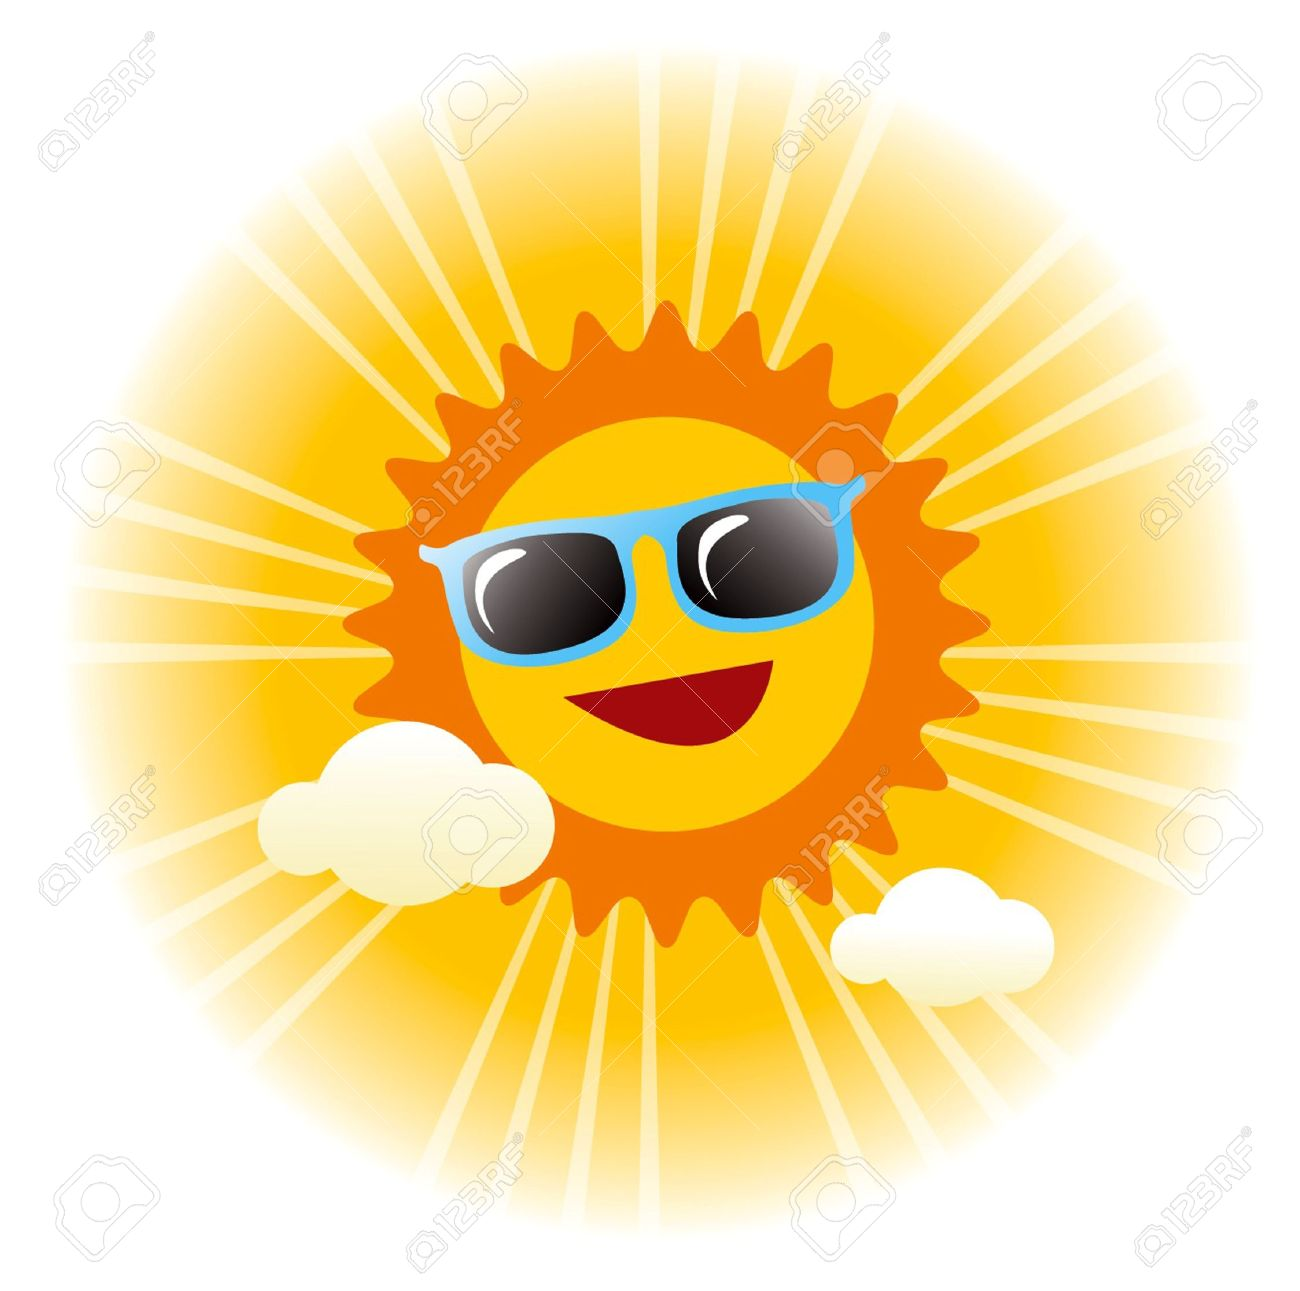 Summer Sunny Day Vector Graphic Royalty Free Cliparts, Vectors.